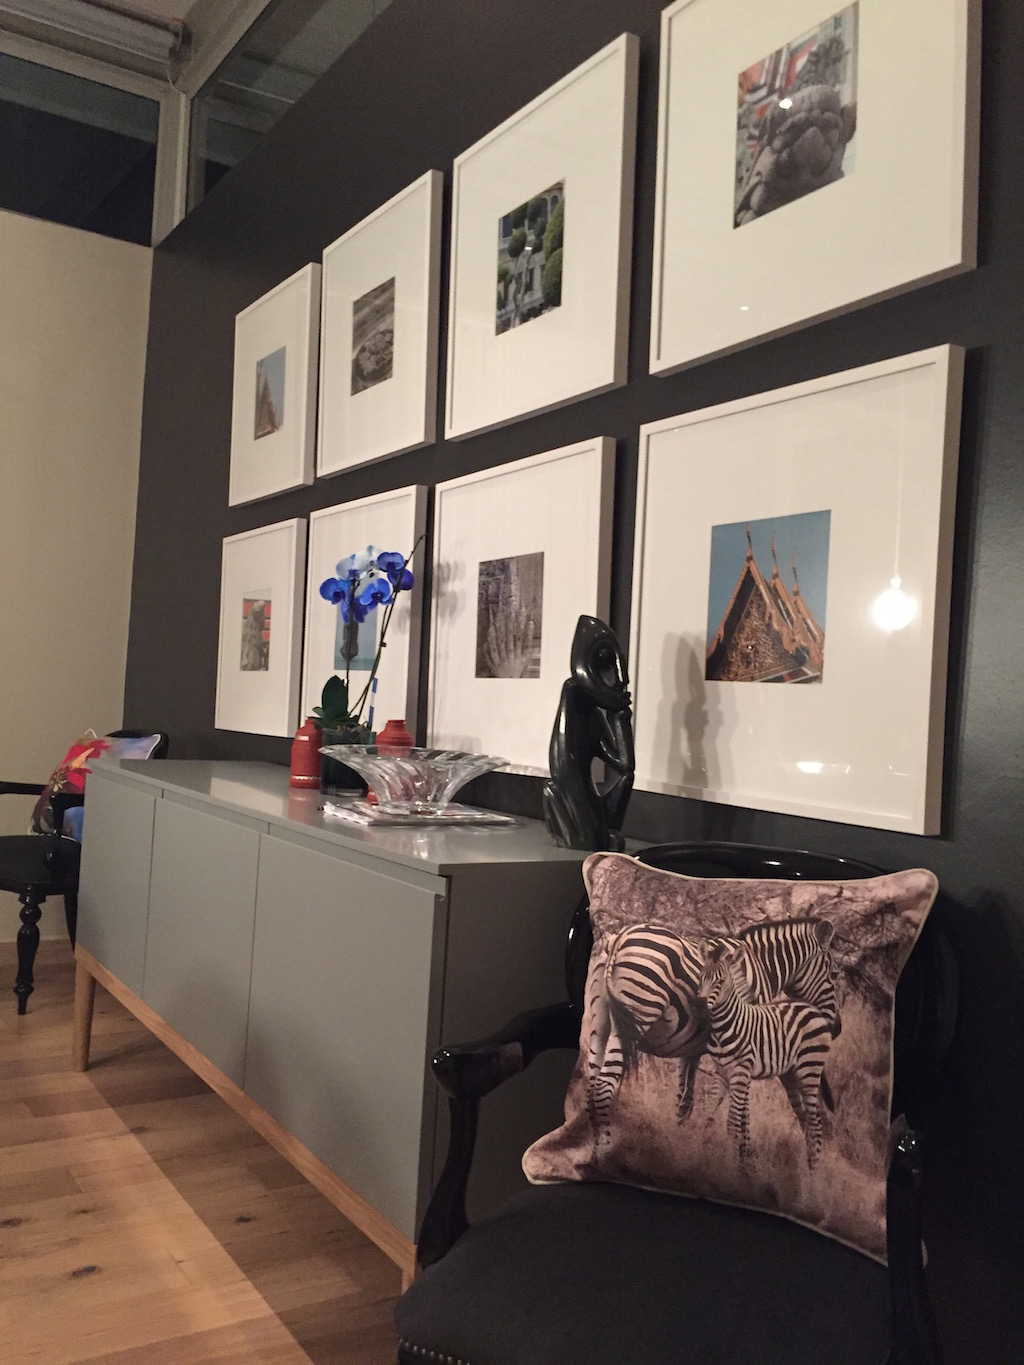 Zebra Cushion and Frames